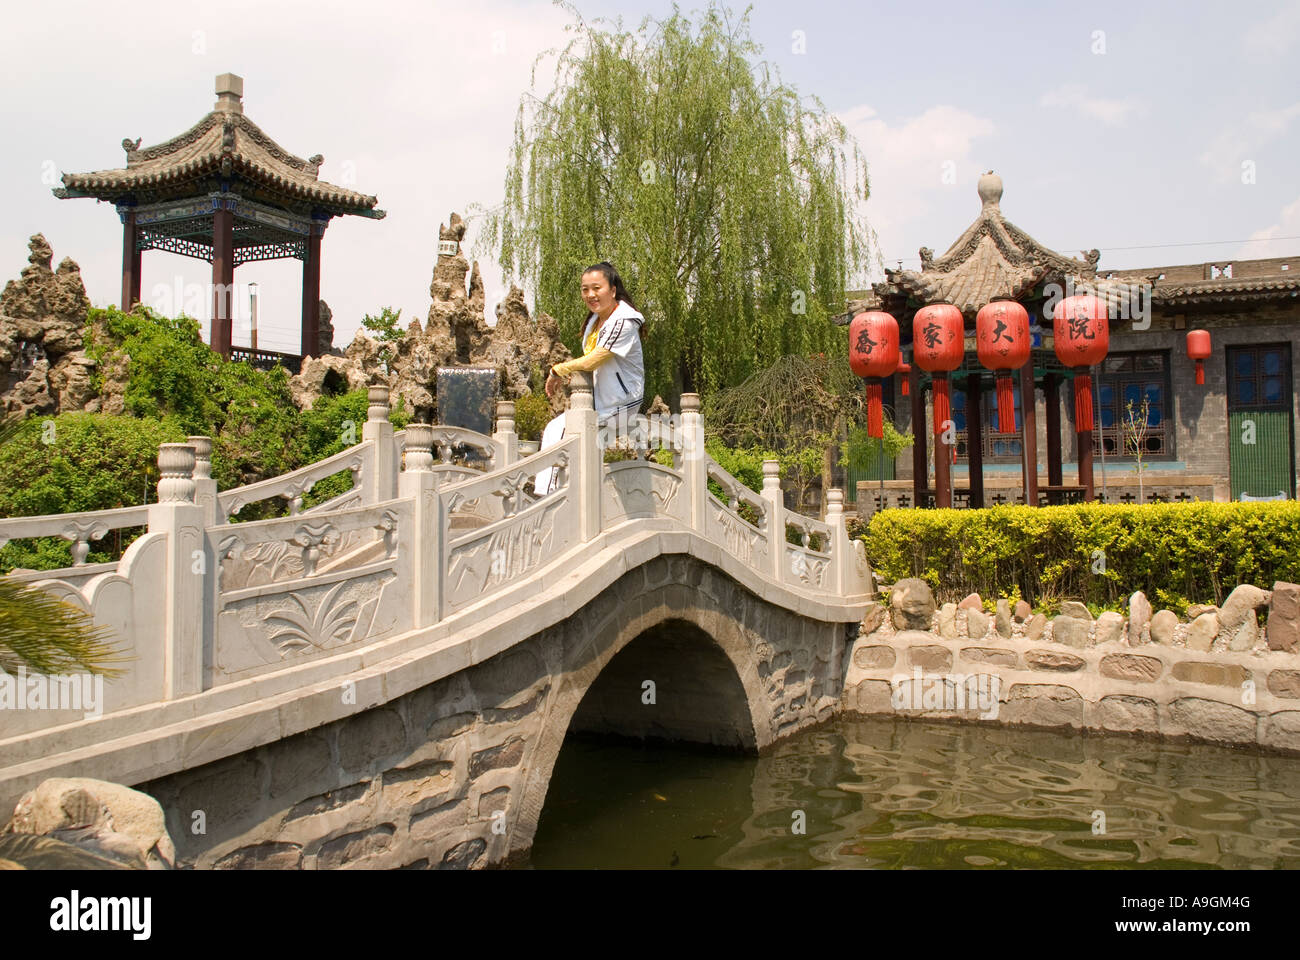 Classical Chinese garden with pond and stone bridge at Qiao Family ...